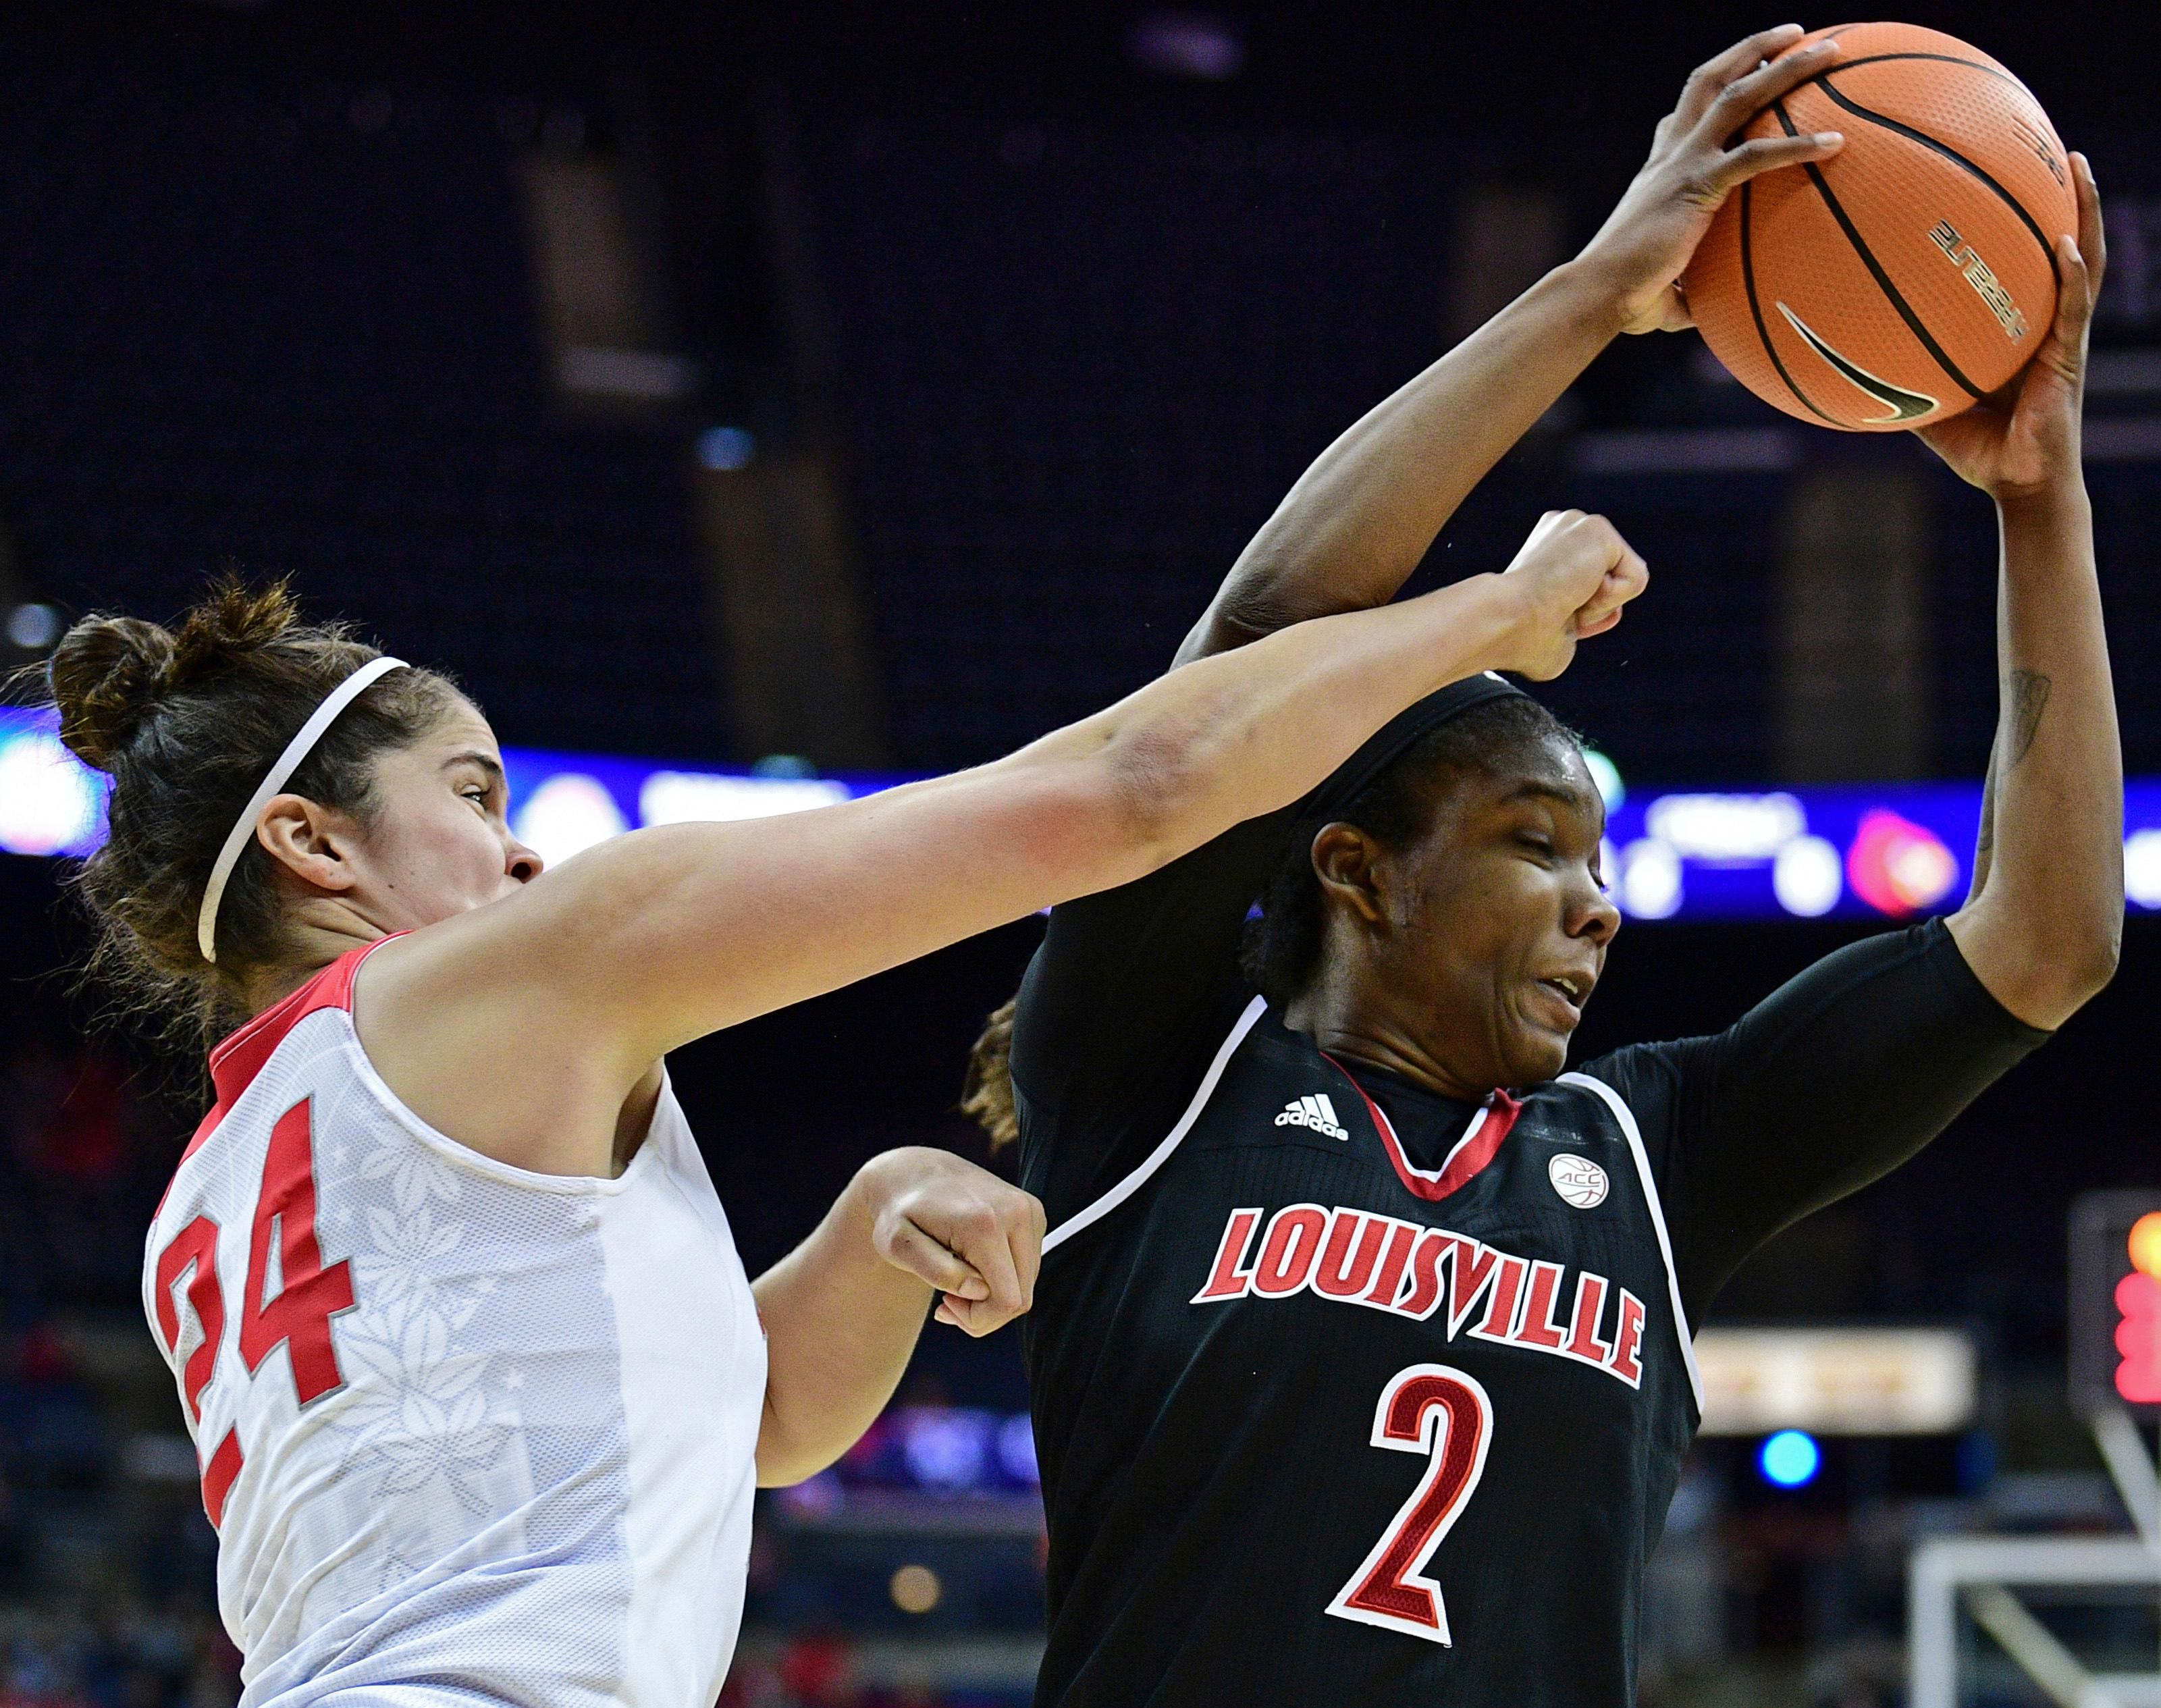 Louisville's Myisha Hines-Allen (2) rebounds against Ohio State's Makayla Waterman during the second quarter of an NCAA college basketball game, Sunday, Nov. 12, 2017, in Columbus, Ohio. (AP Photo/David Dermer)